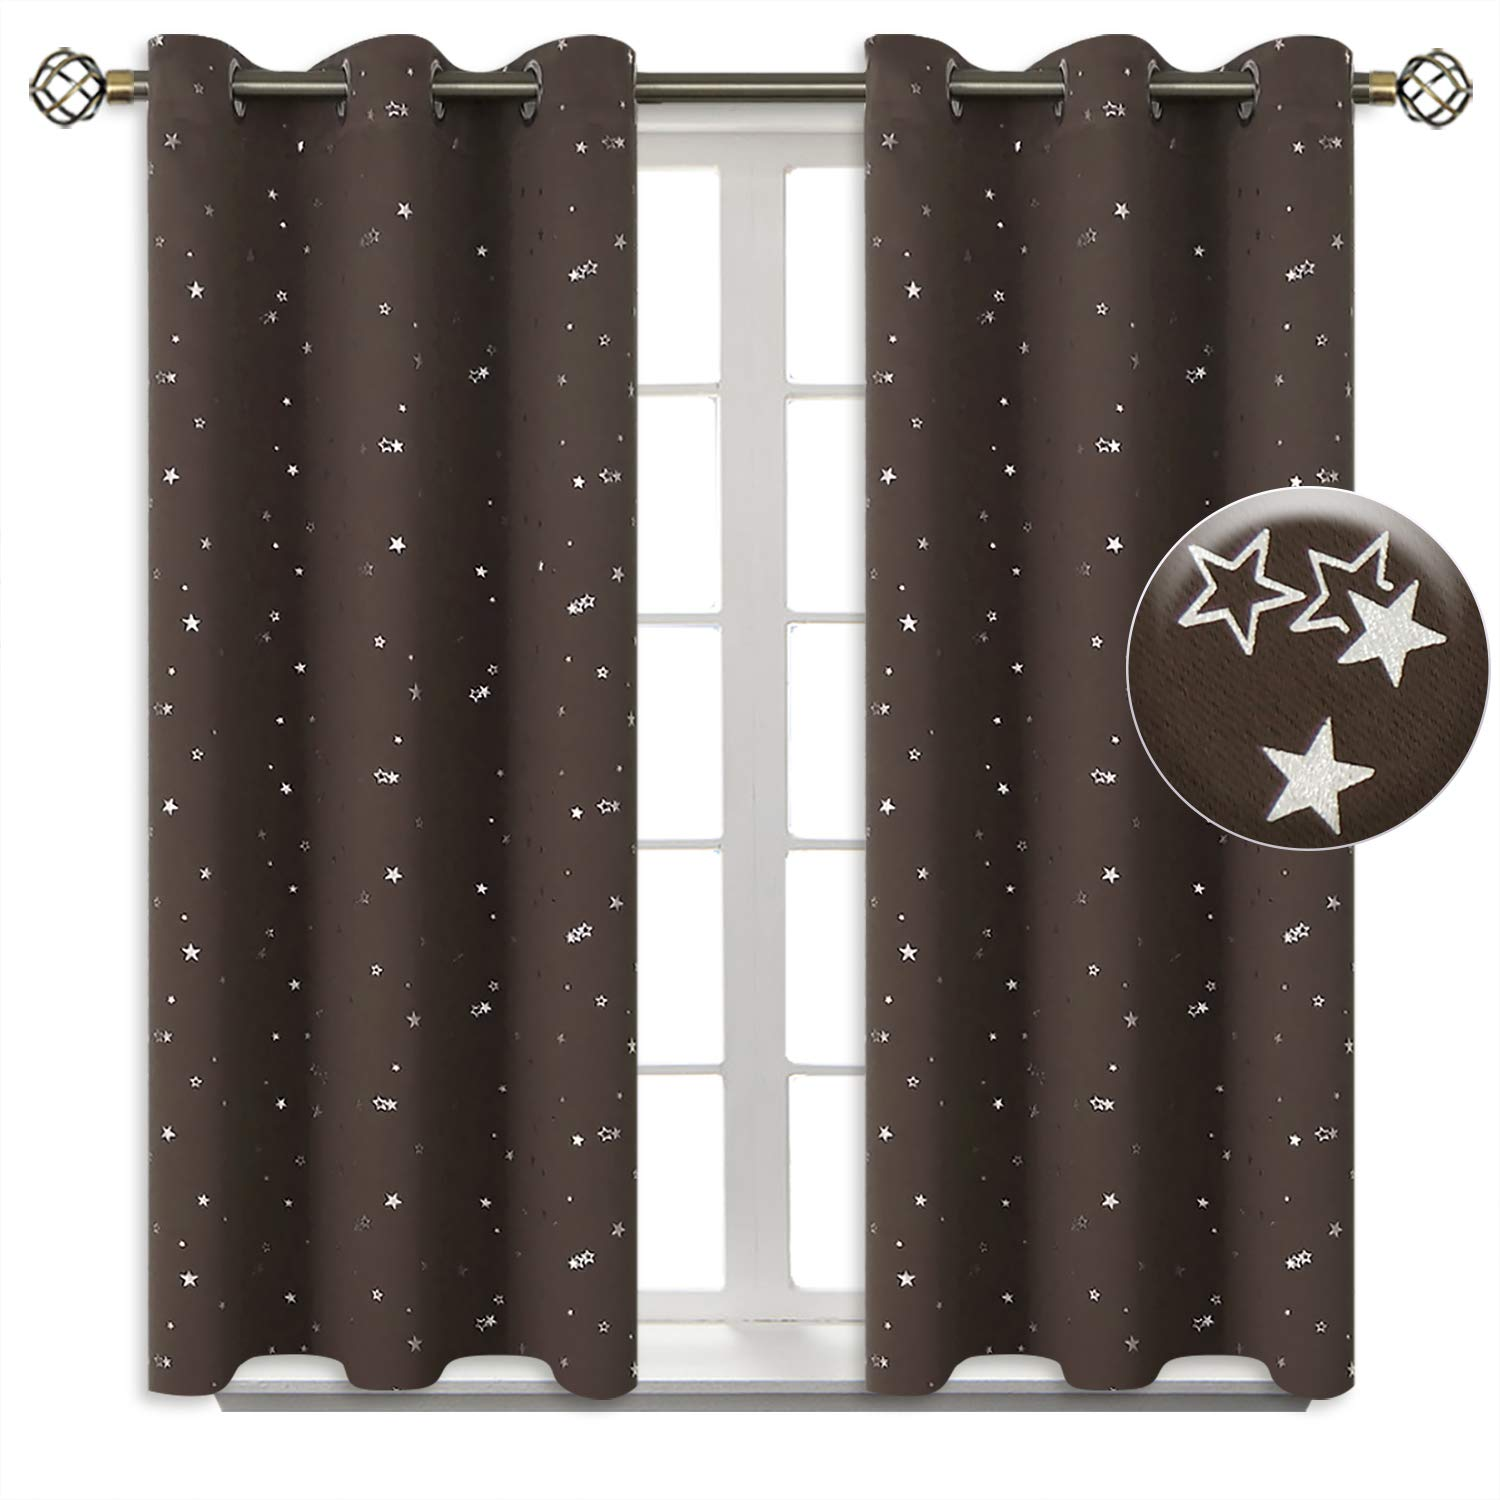 BGment Kids Blackout Curtains for Bedroom - Grommet Thermal Insulated Silver Star Print Room Darkening Curtains for Living Room, Set of 2 Panels (38 x 54 Inch, Brown)